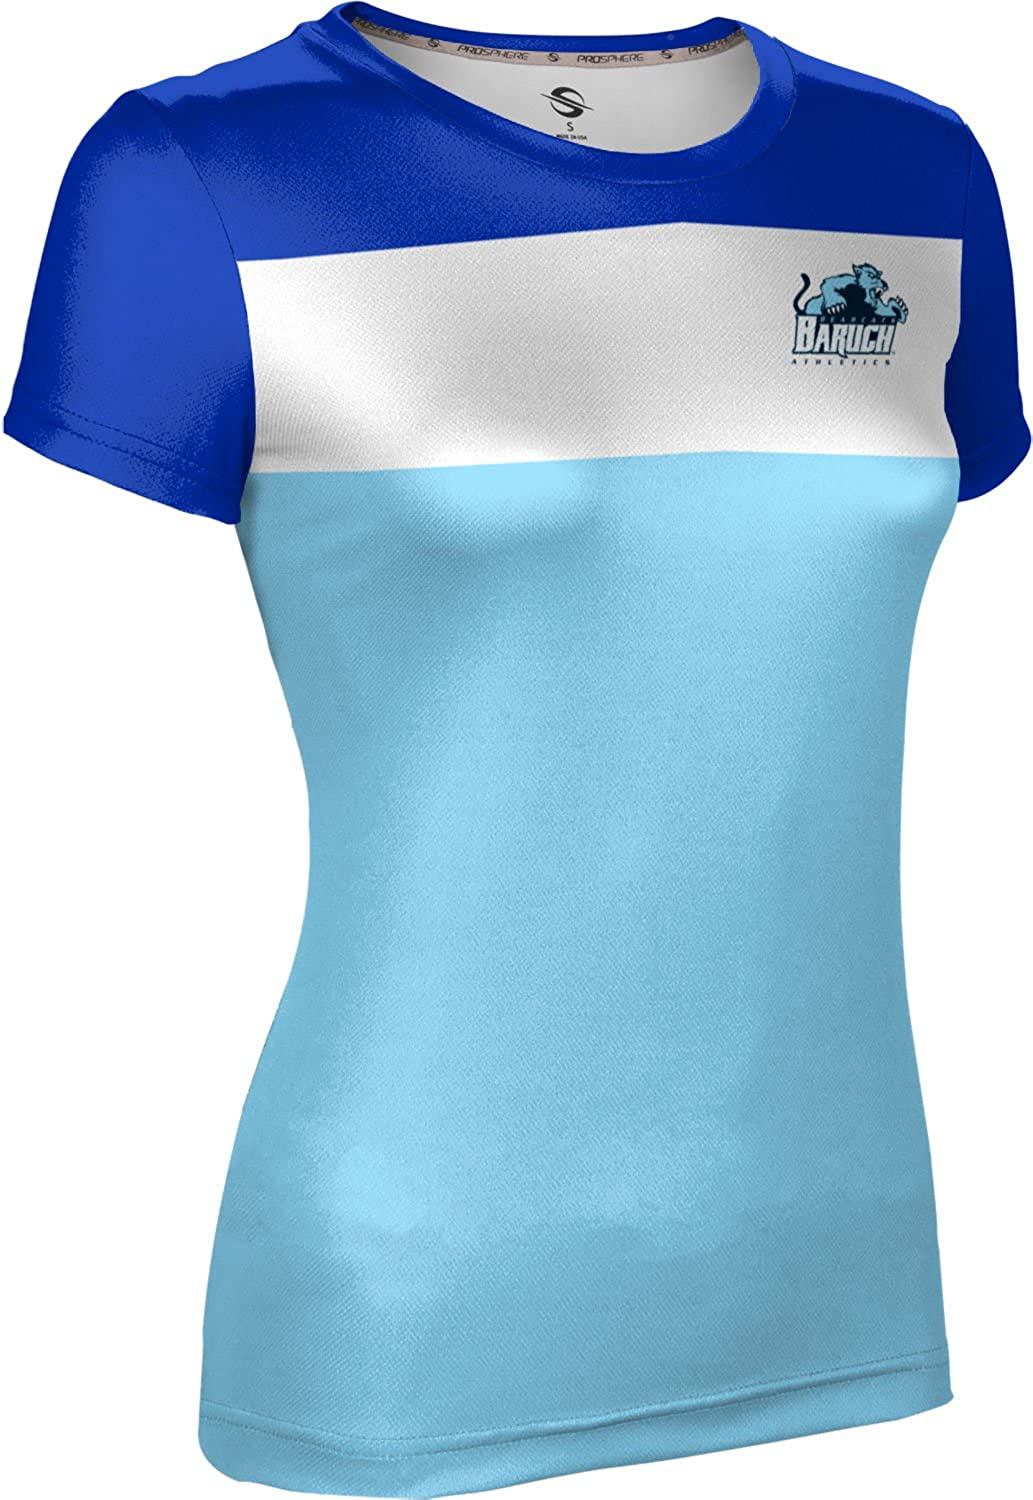 Prime ProSphere Baruch College Girls Performance T-Shirt